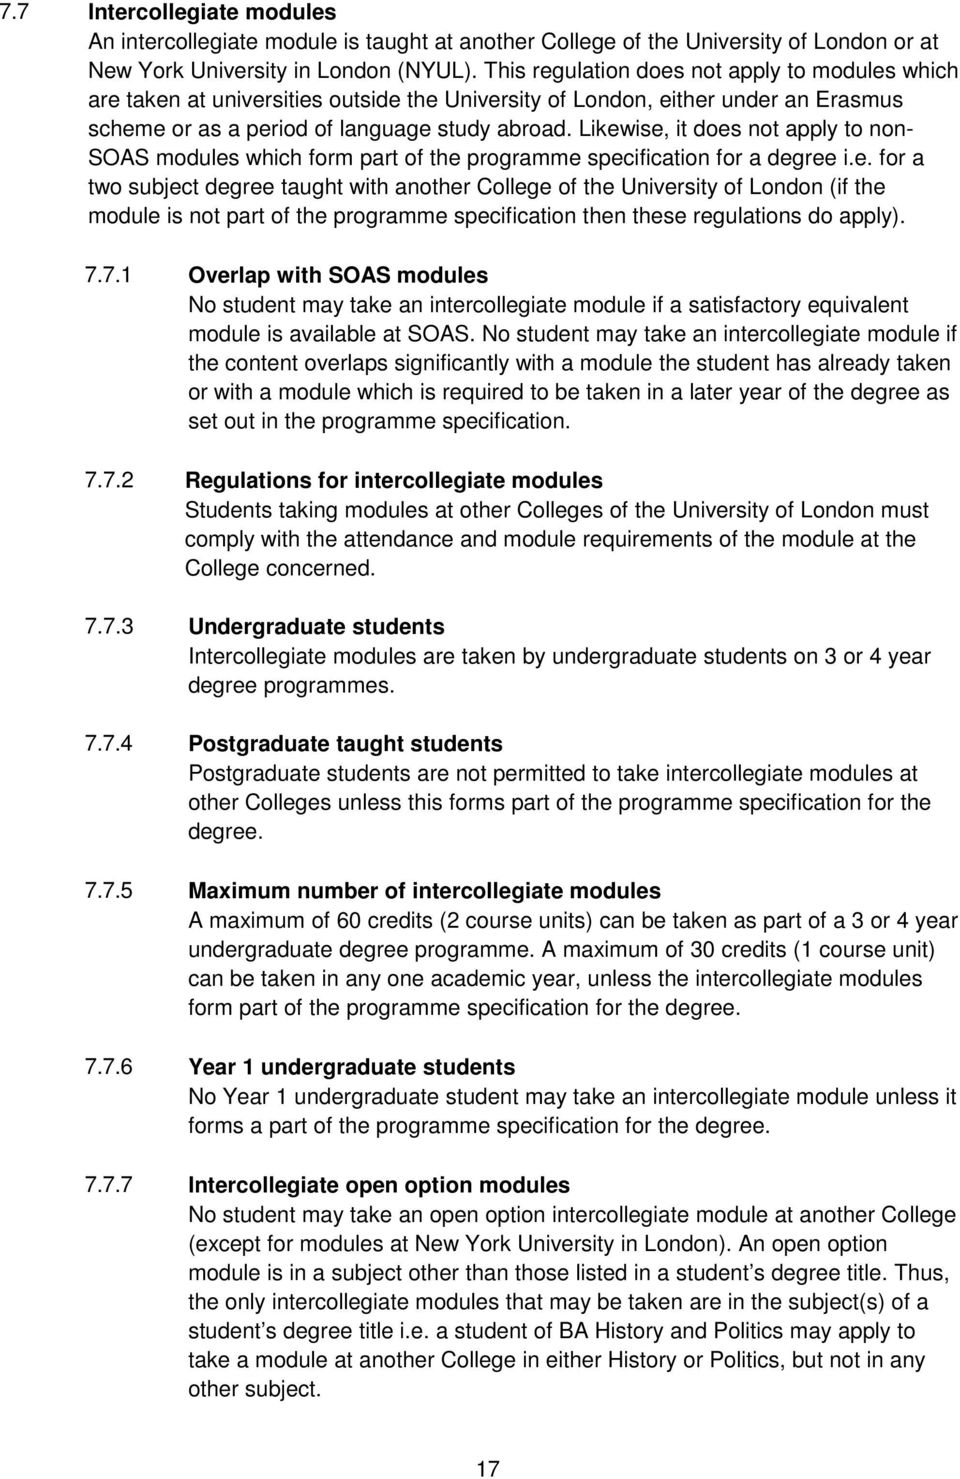 Likewise, it does not apply to non- SOAS modules which form part of the programme specification for a degree i.e. for a two subject degree taught with another College of the University of London (if the module is not part of the programme specification then these regulations do apply).